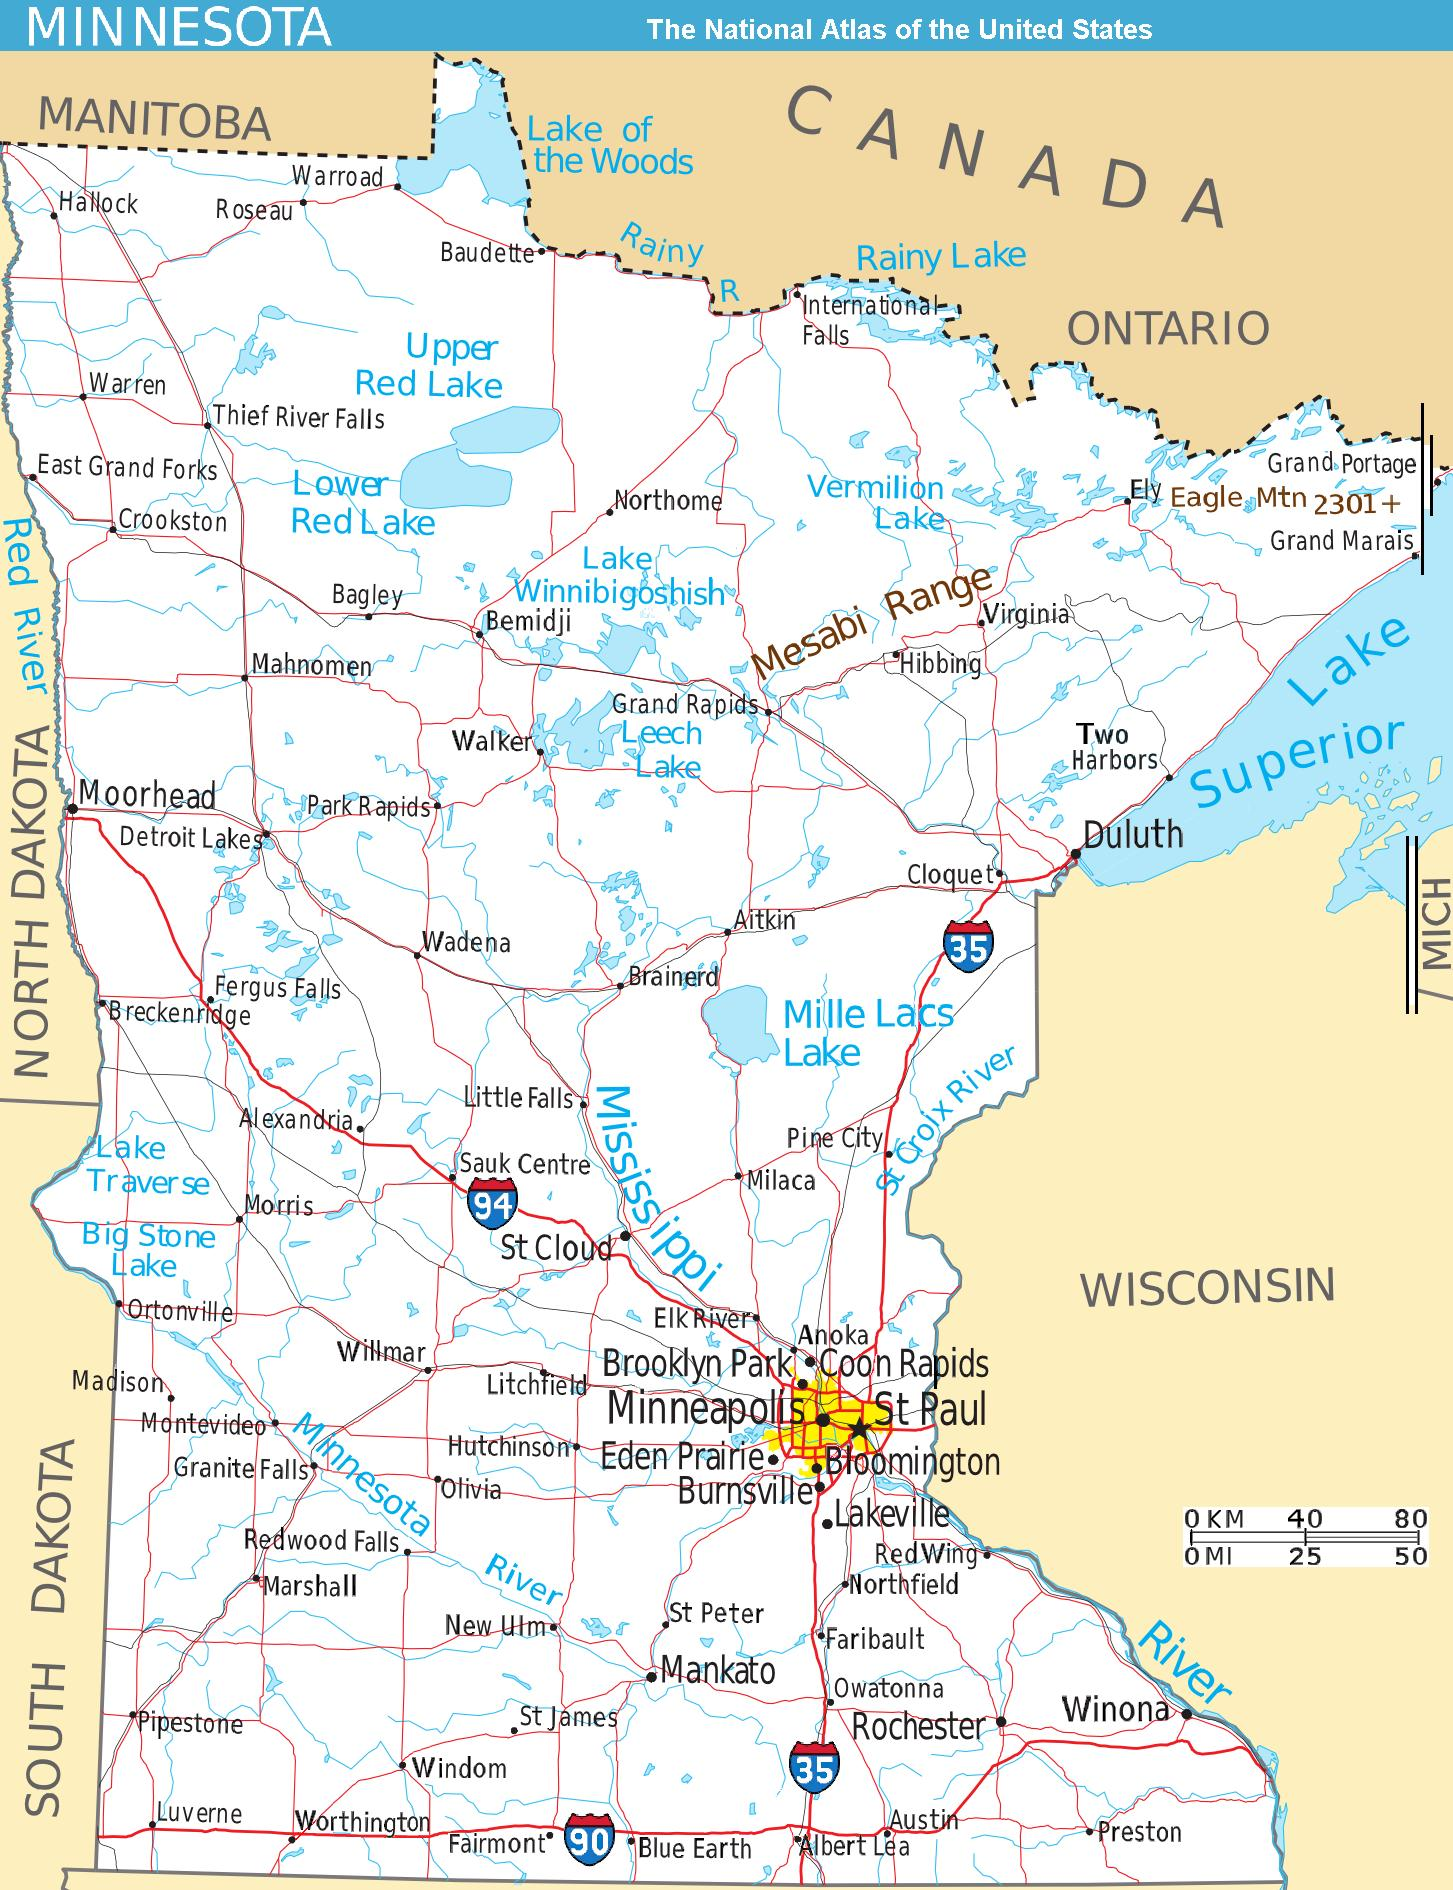 21 Awesome Minnesota Lakes that All Fishermen Should Know About – Minnesota Tourist Attractions Map